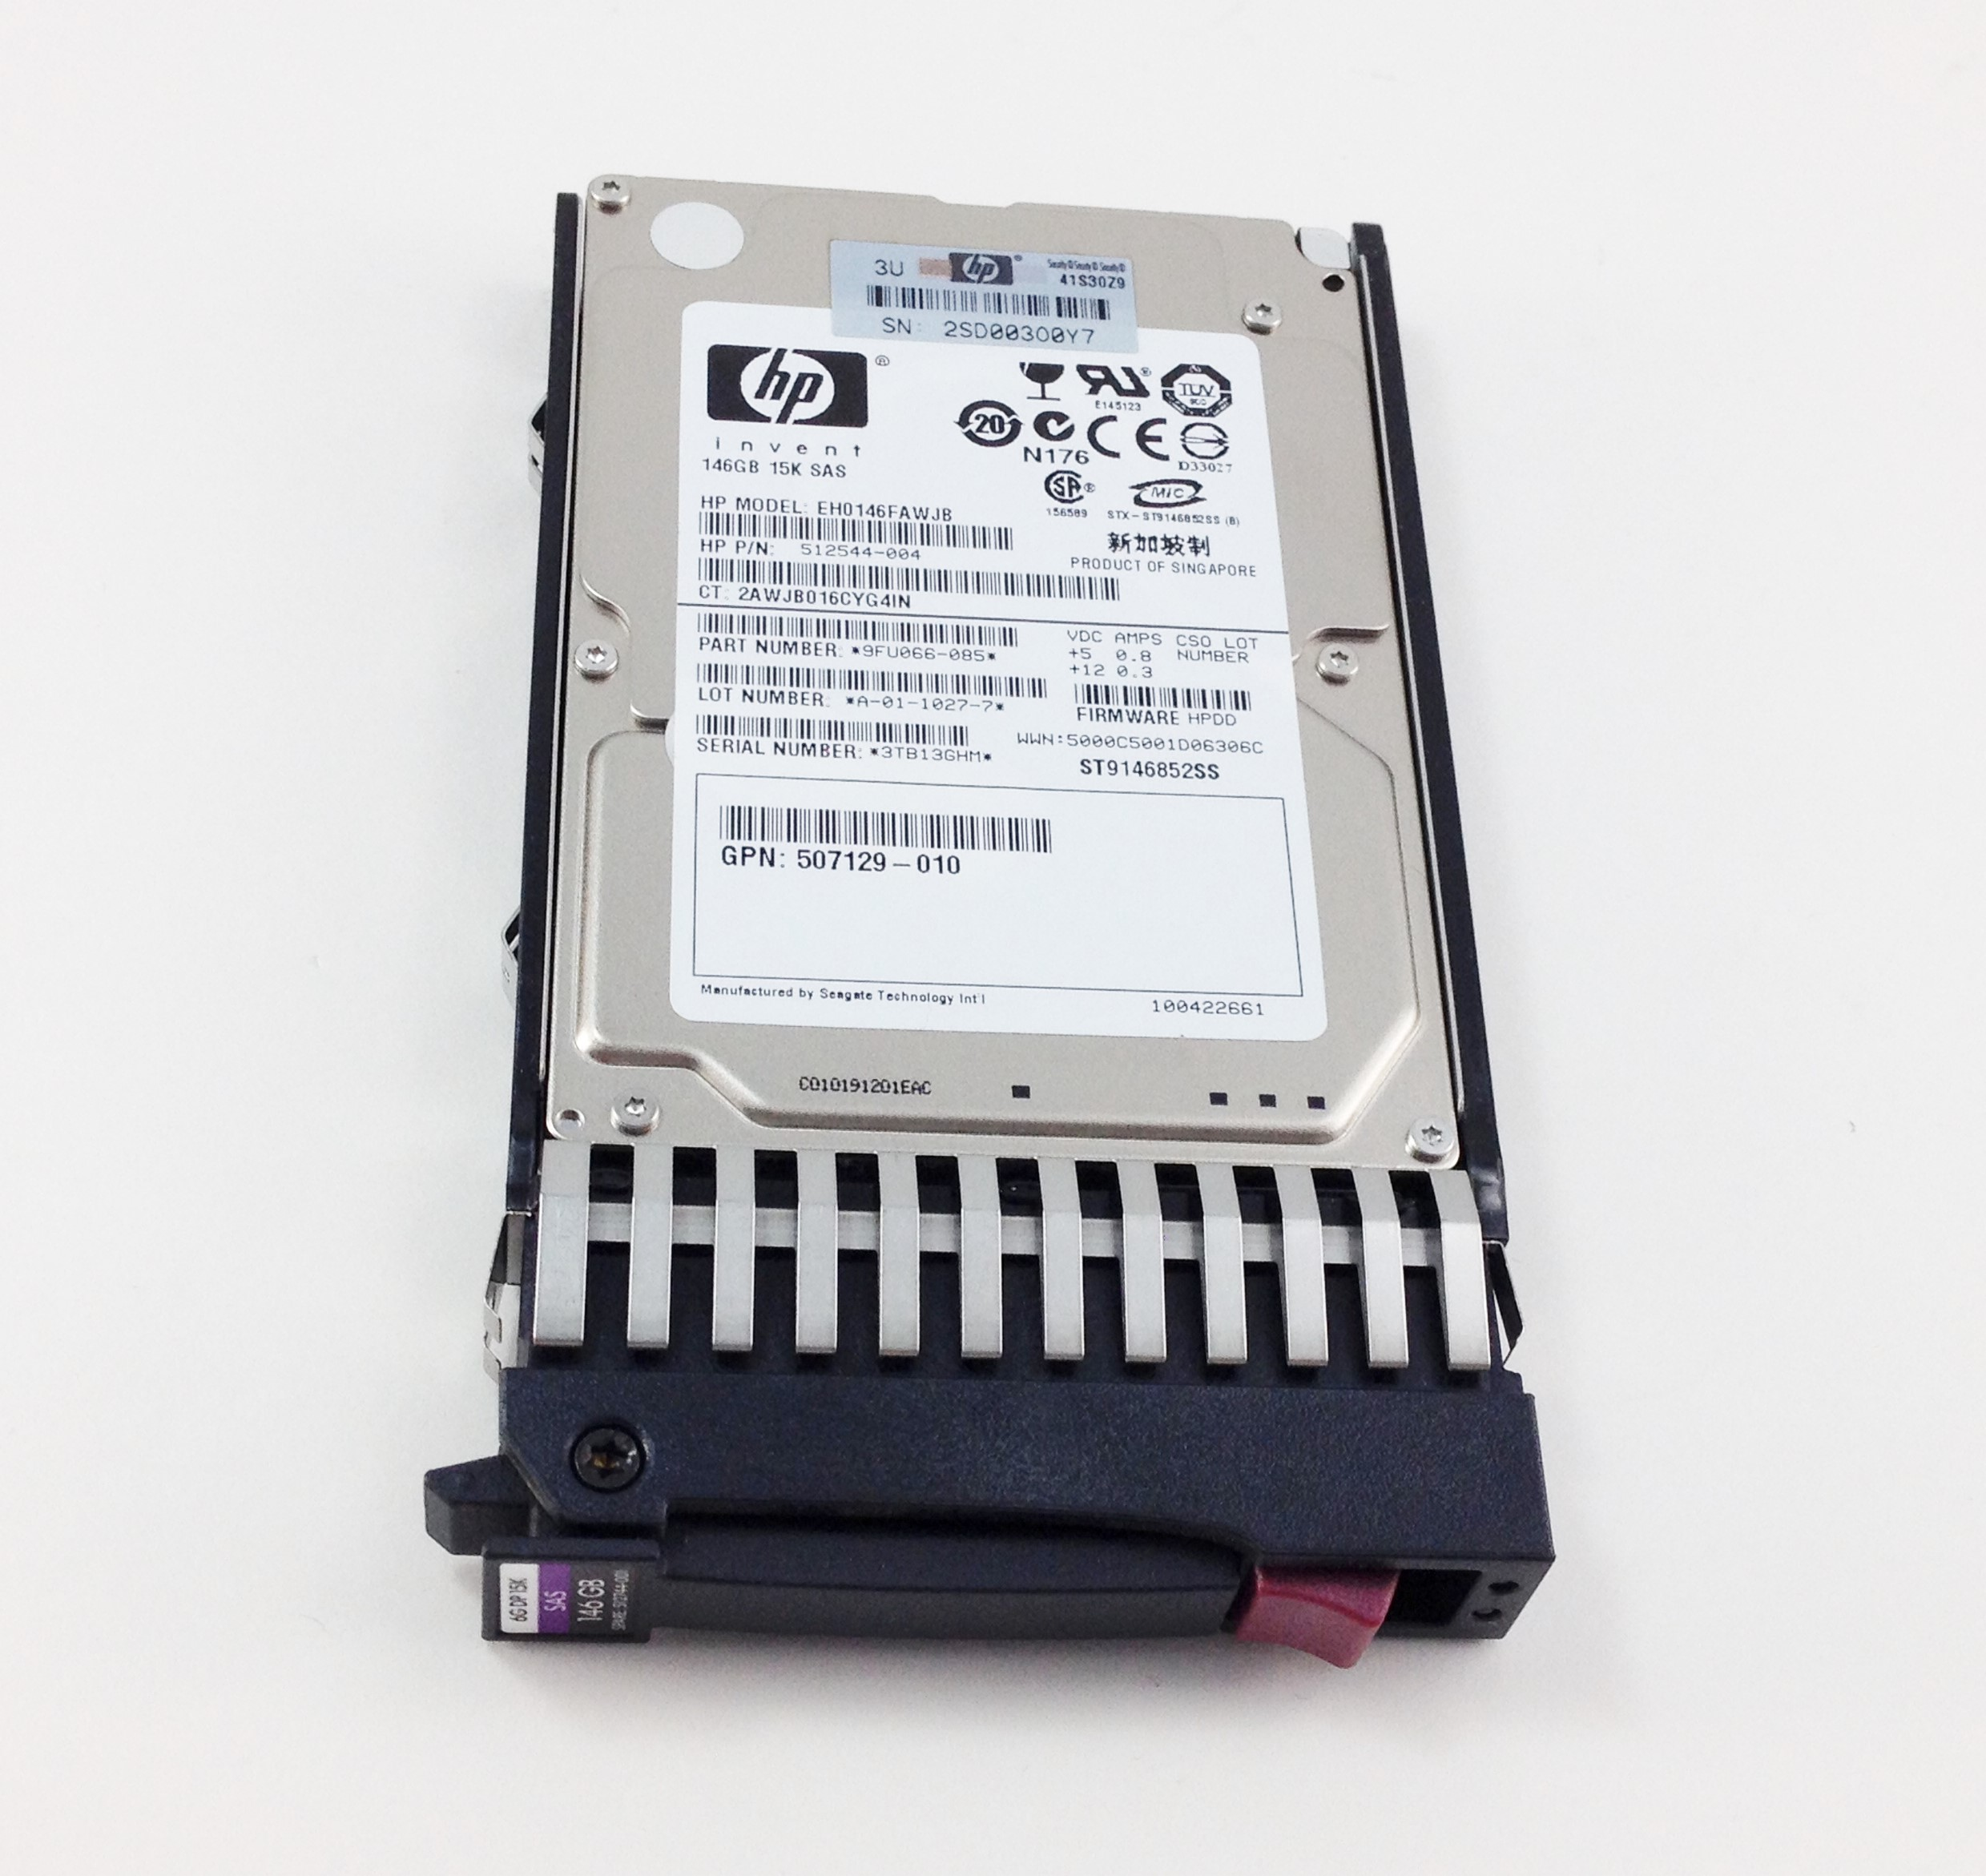 HP 146GB 15K SAS 6G 2.5'' SFF Hard Drive W/ Tray (512544-004)